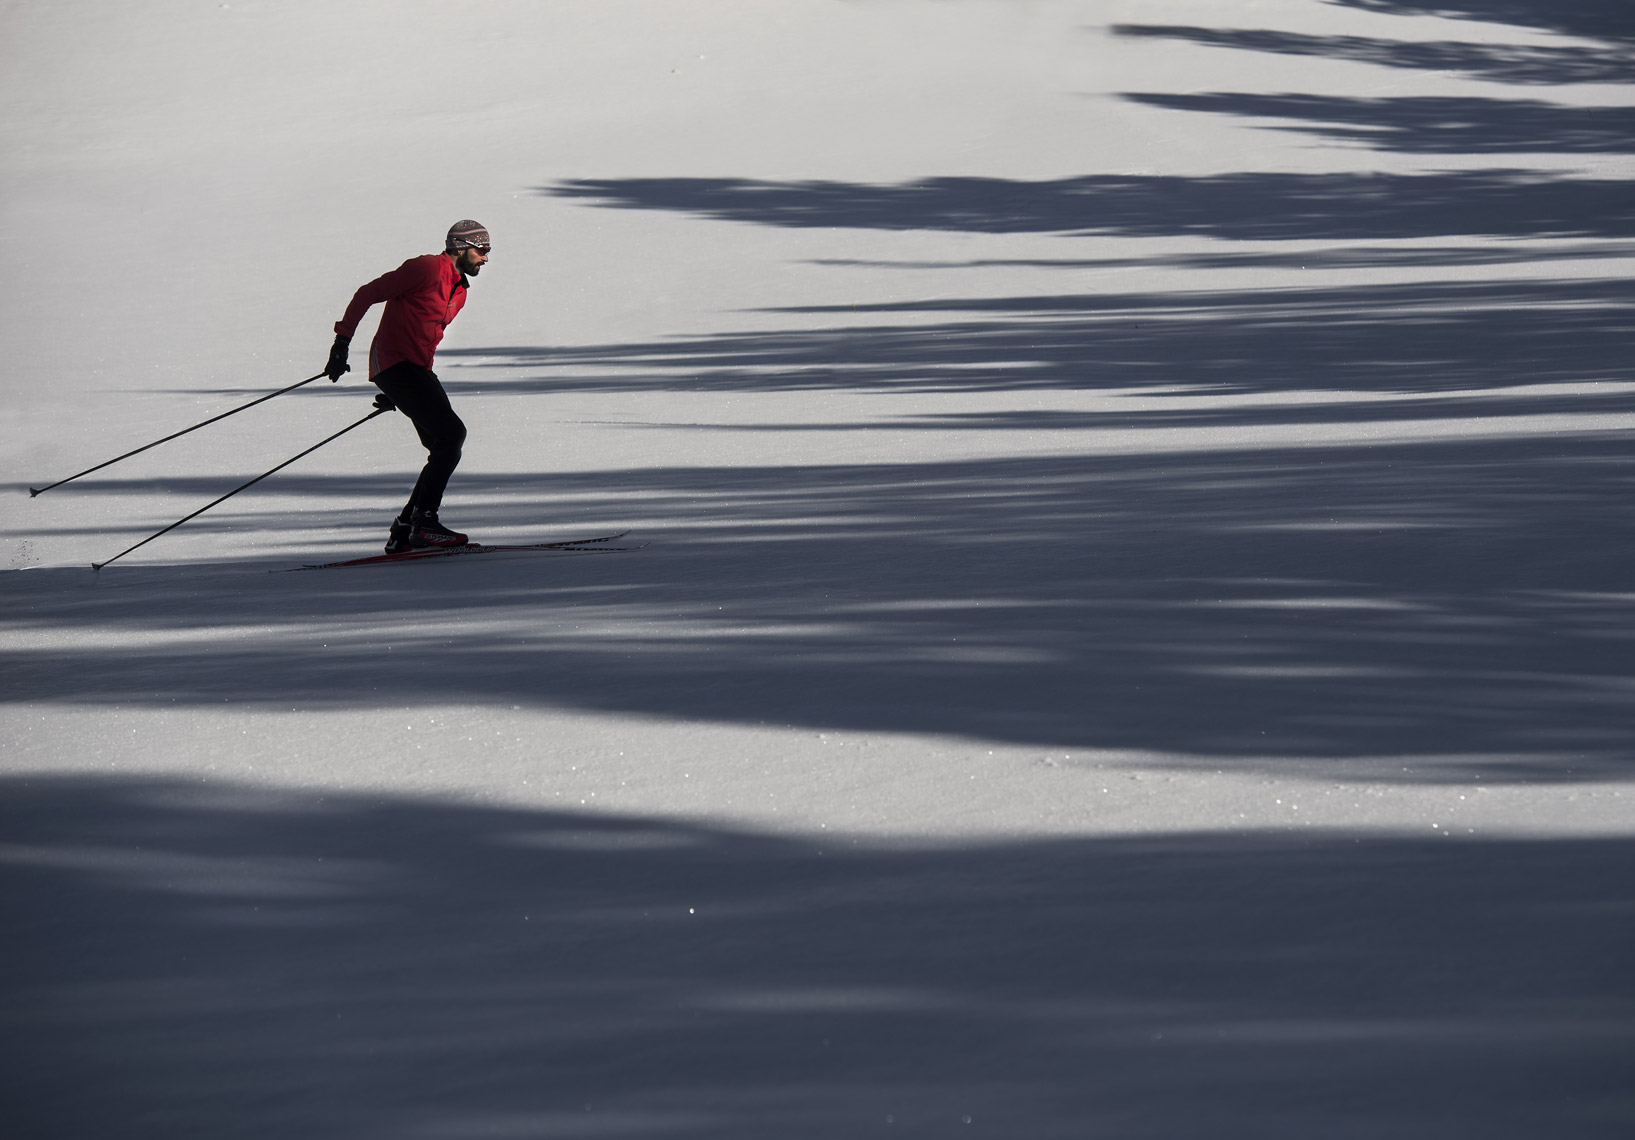 Cross country ski and shadows